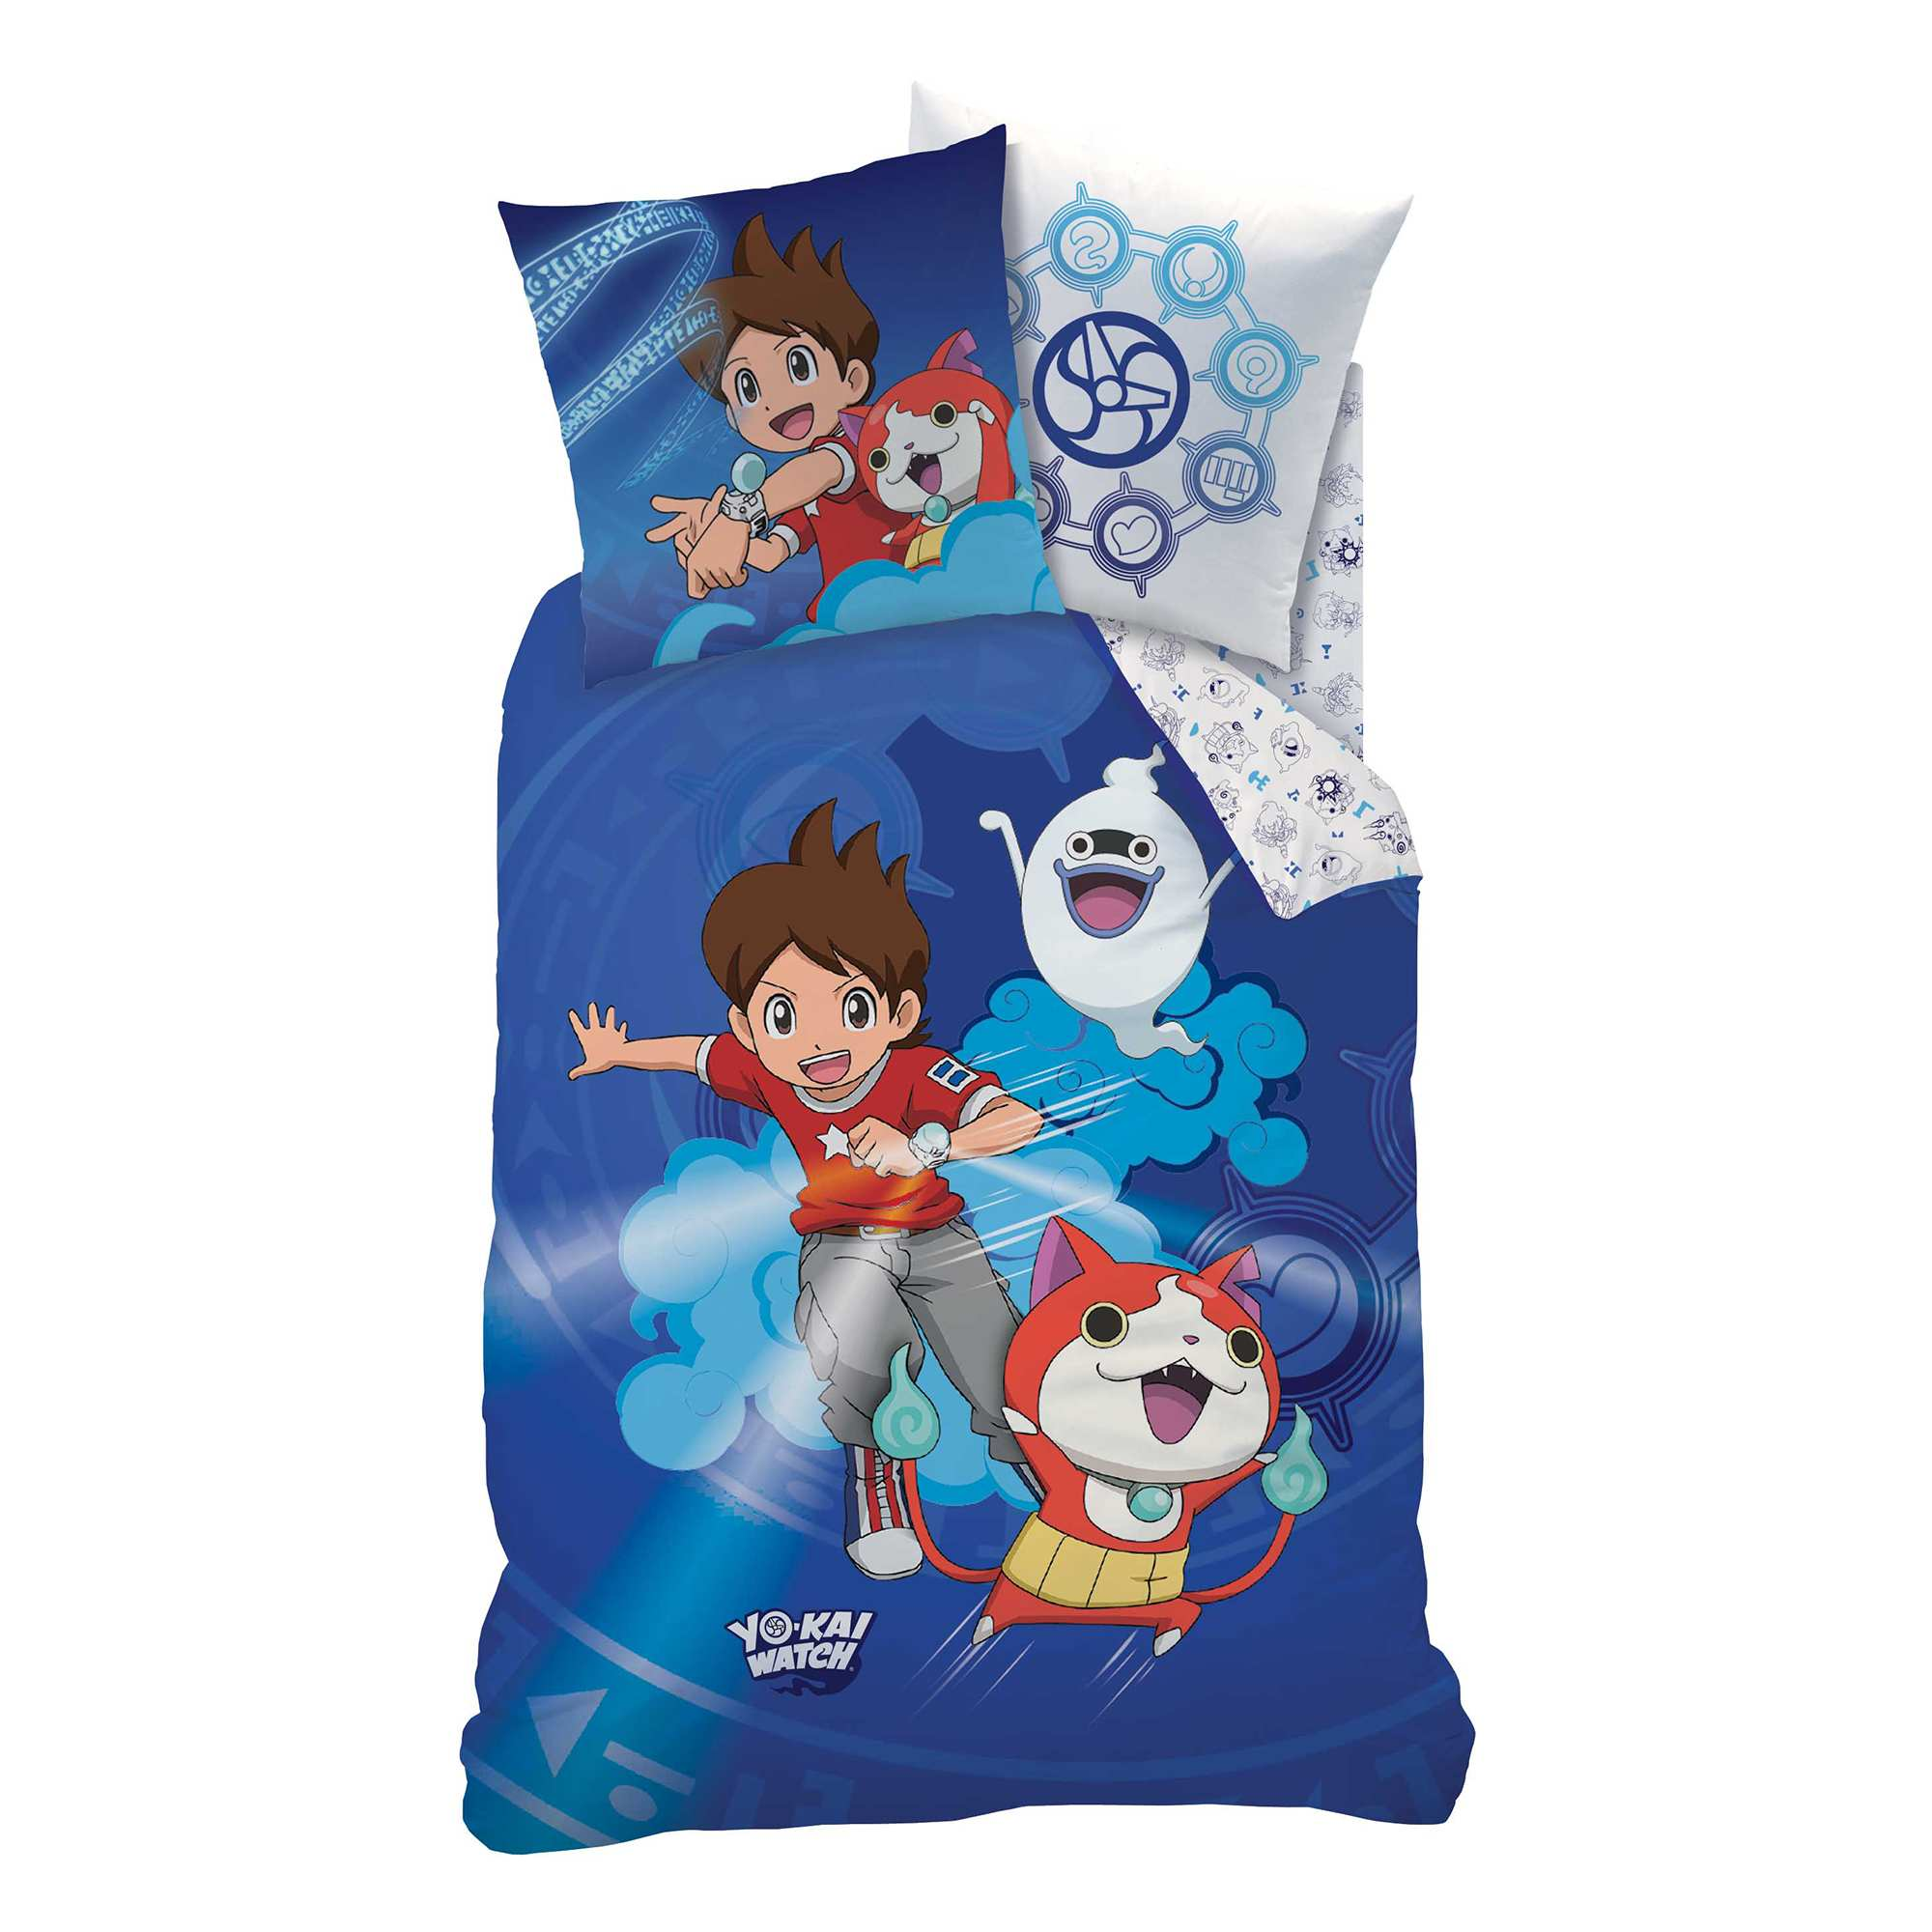 parure de lit 39 yo kai watch 39 linge de lit bleu kiabi 35 00. Black Bedroom Furniture Sets. Home Design Ideas